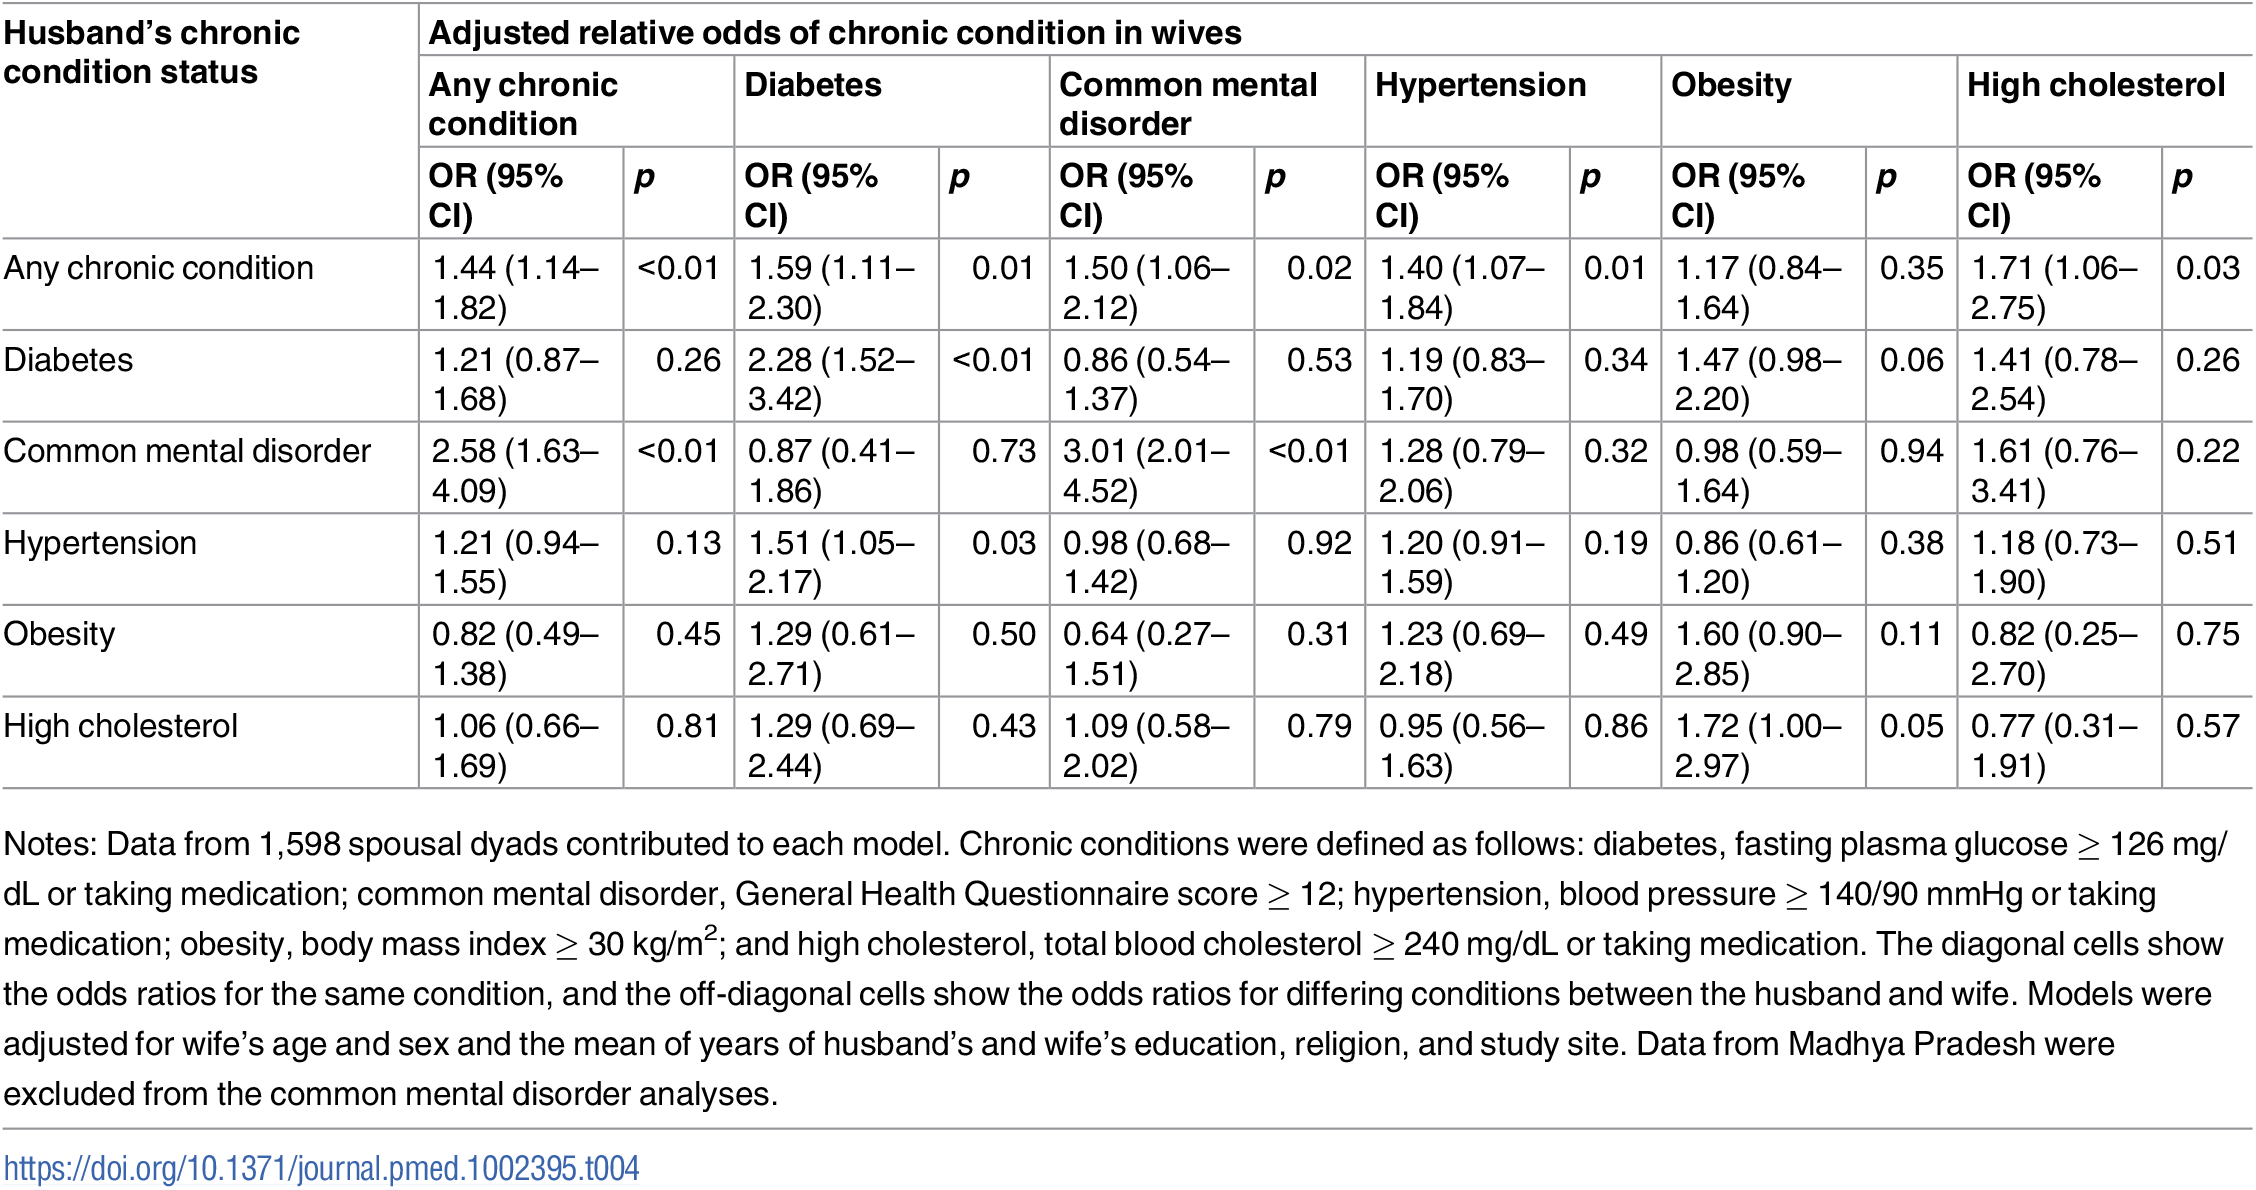 Adjusted association between living with a spouse with a given chronic condition and having that same or another chronic condition (<i>n</i> = 1,598).